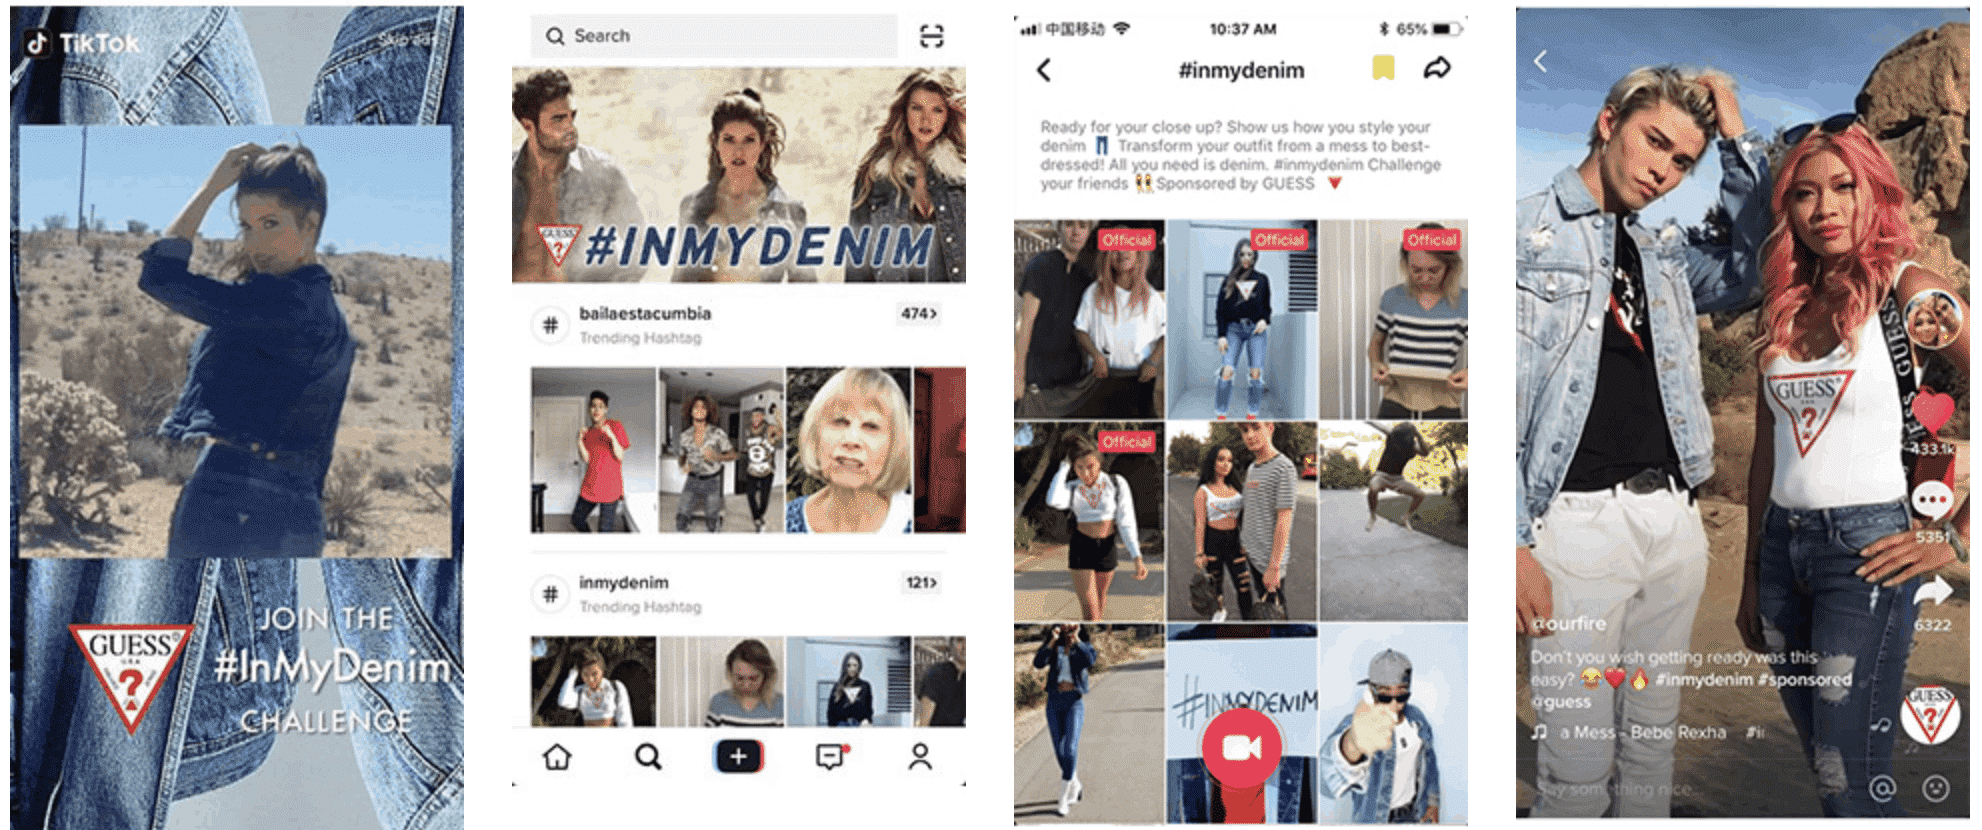 Guess launched the #InMyDenim Hashtag Challenge on TikTok ads